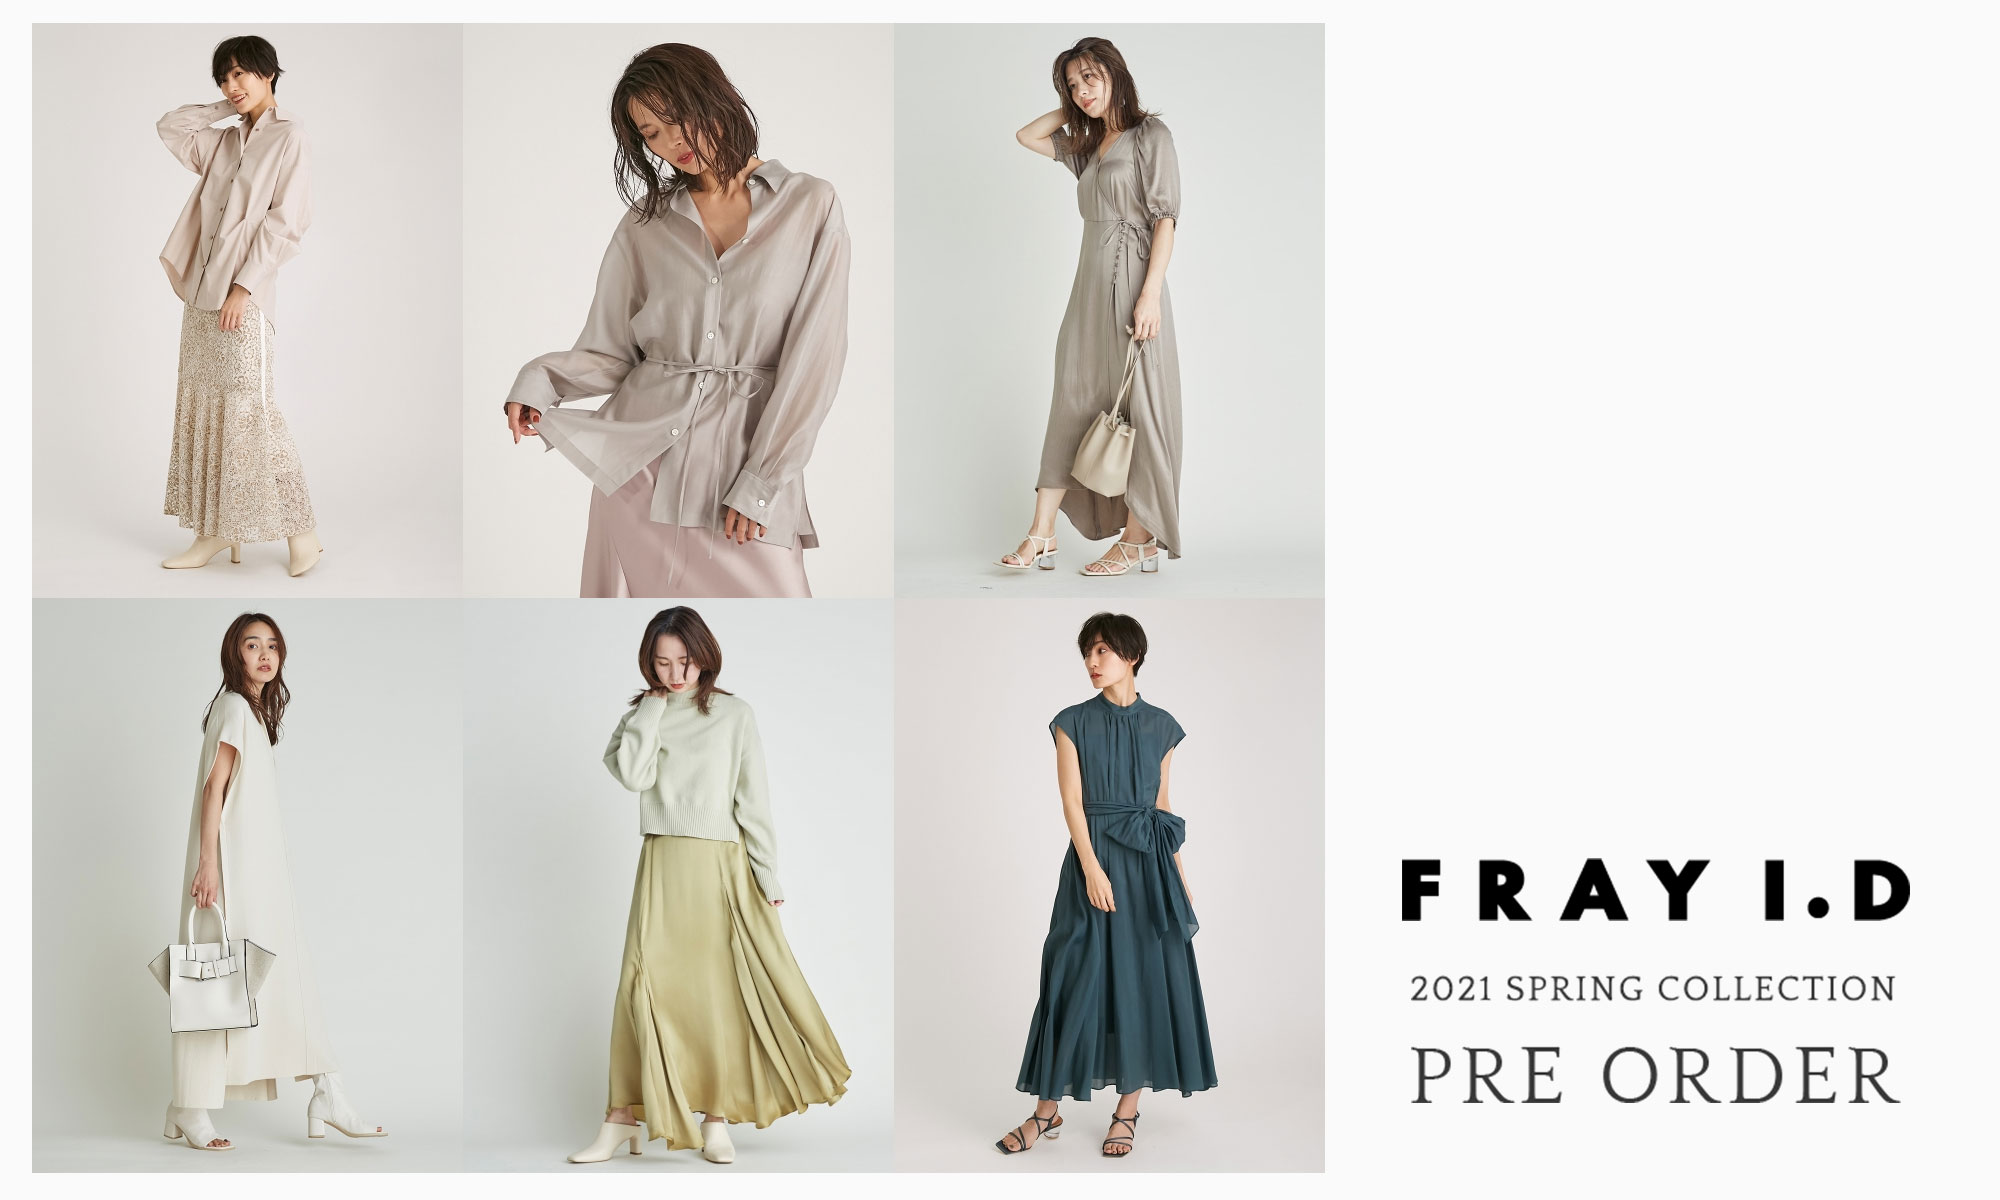 FRAY I.D 2021 spring collection pre-order フレイアイディー 2021年 春物